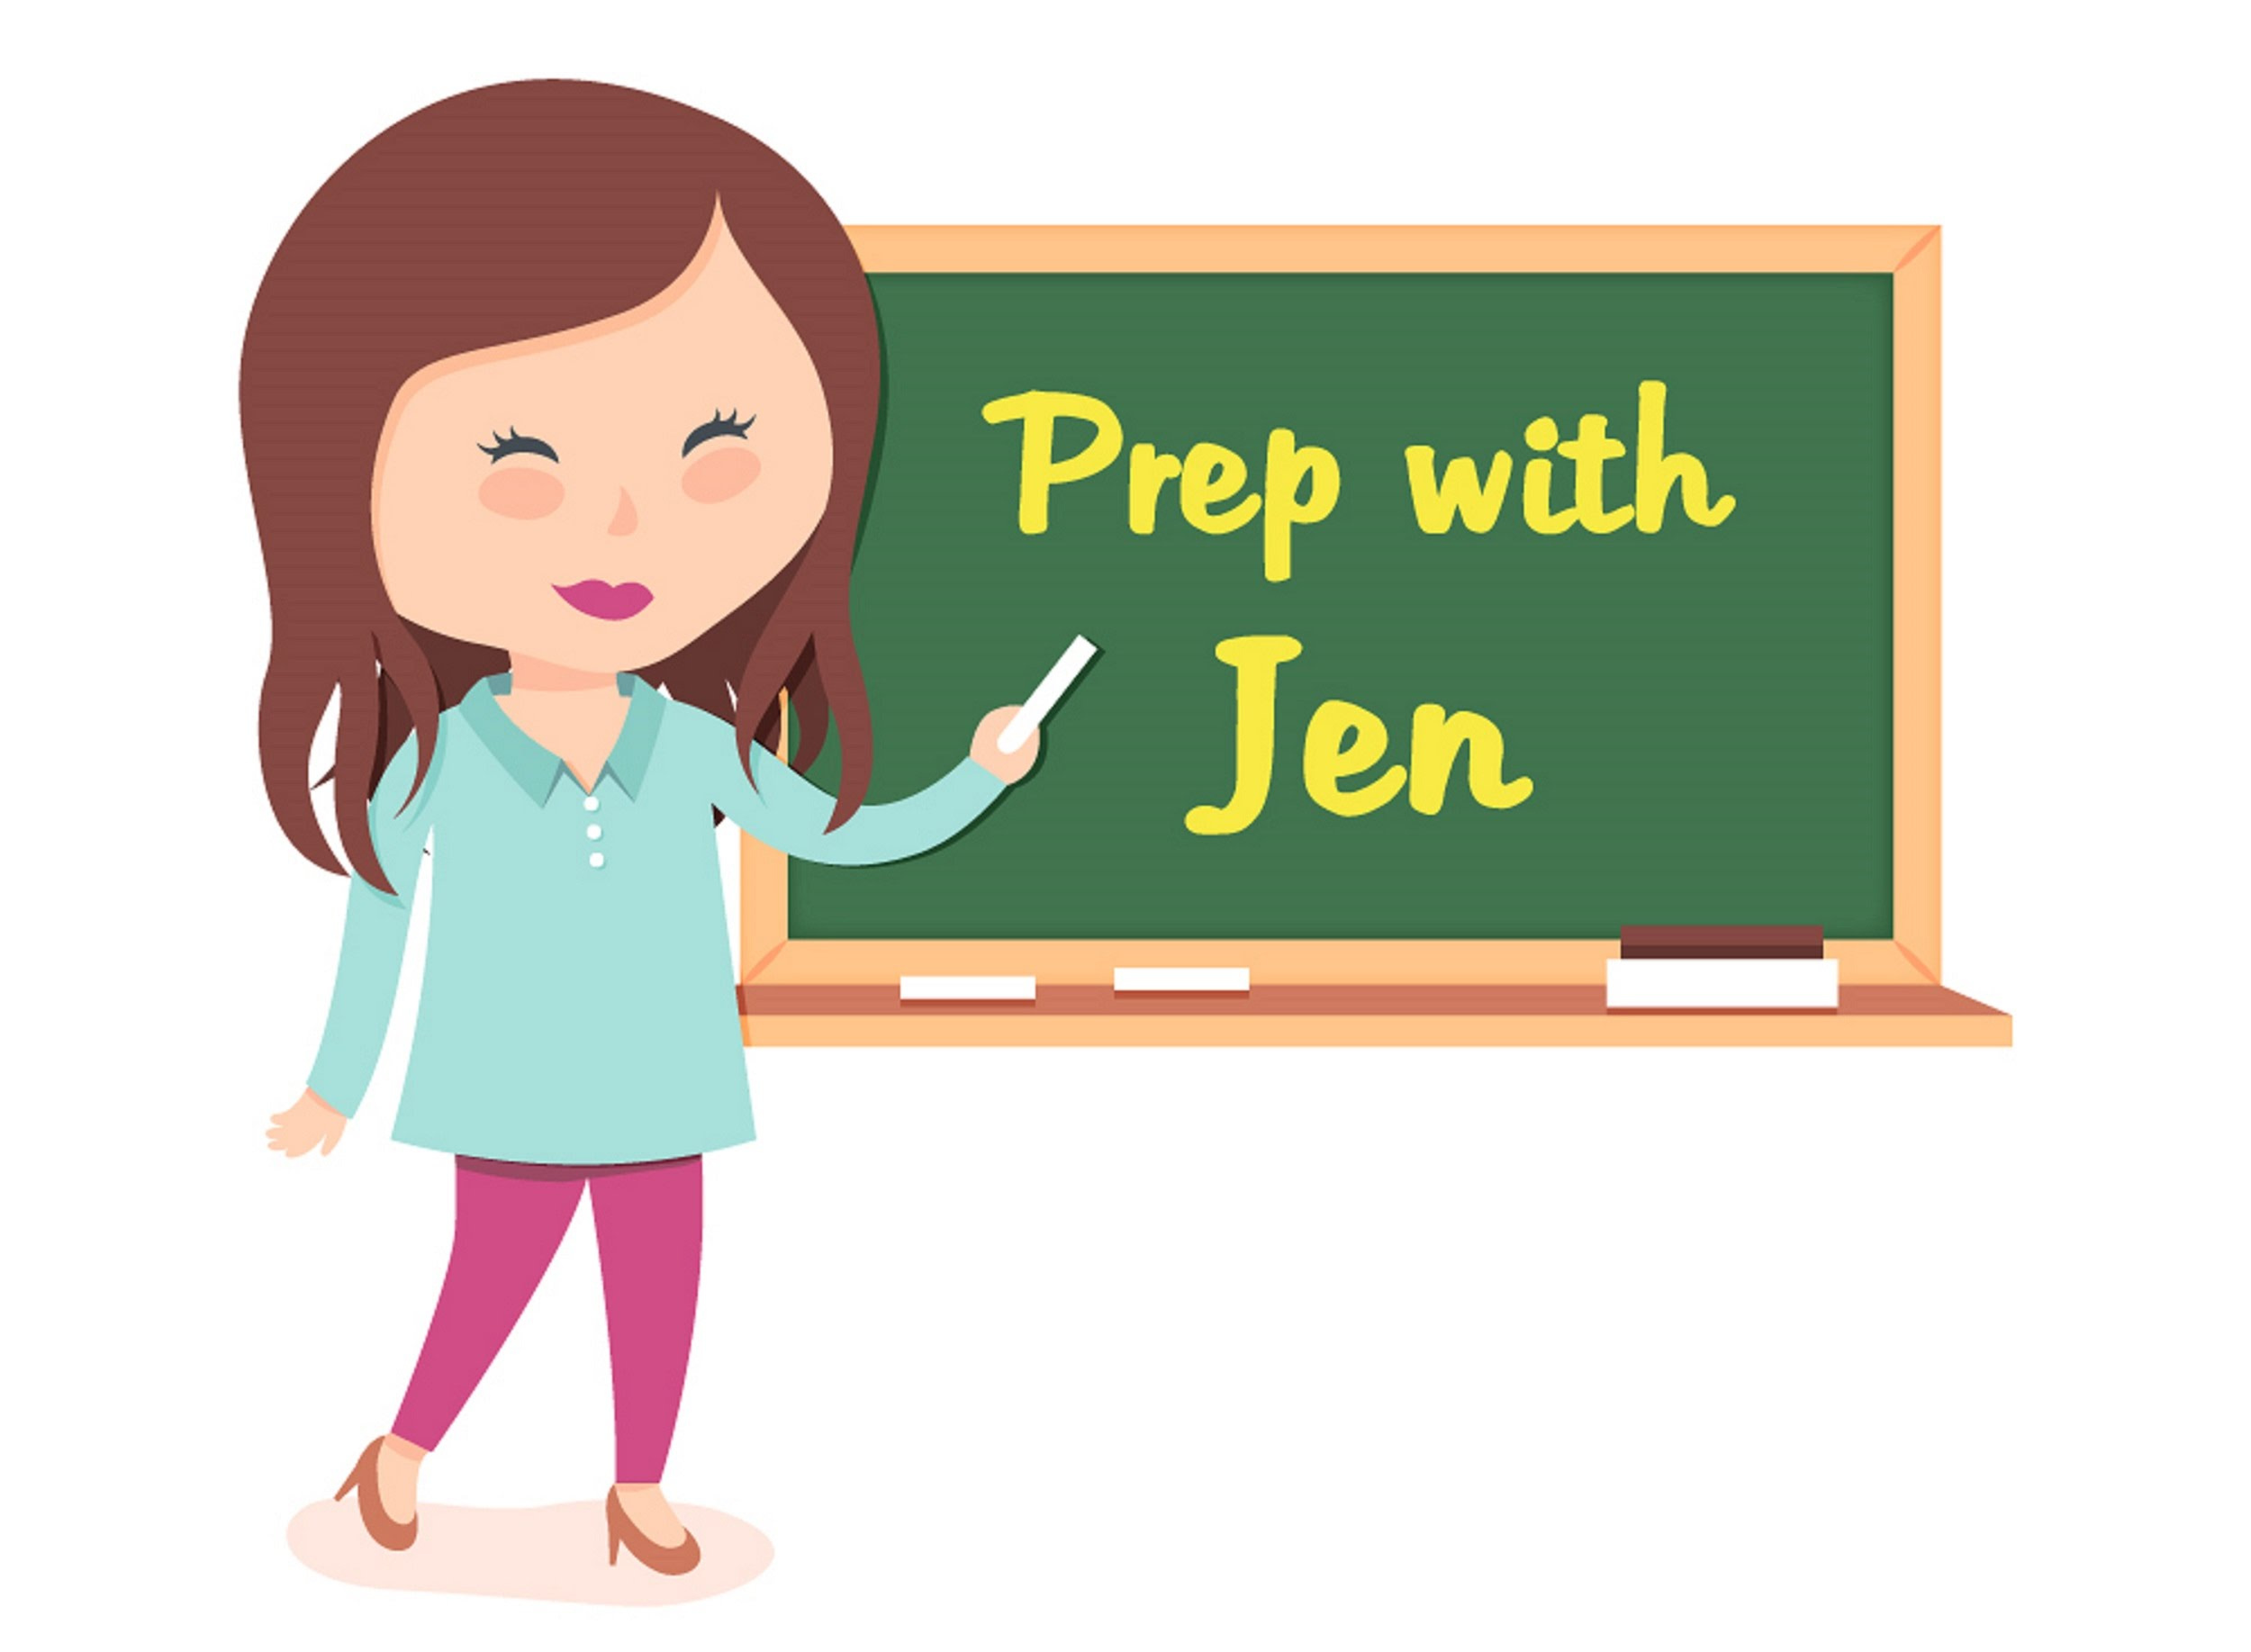 https://sites.google.com/a/cinfoshare.org/cis/education/prep-with-jen